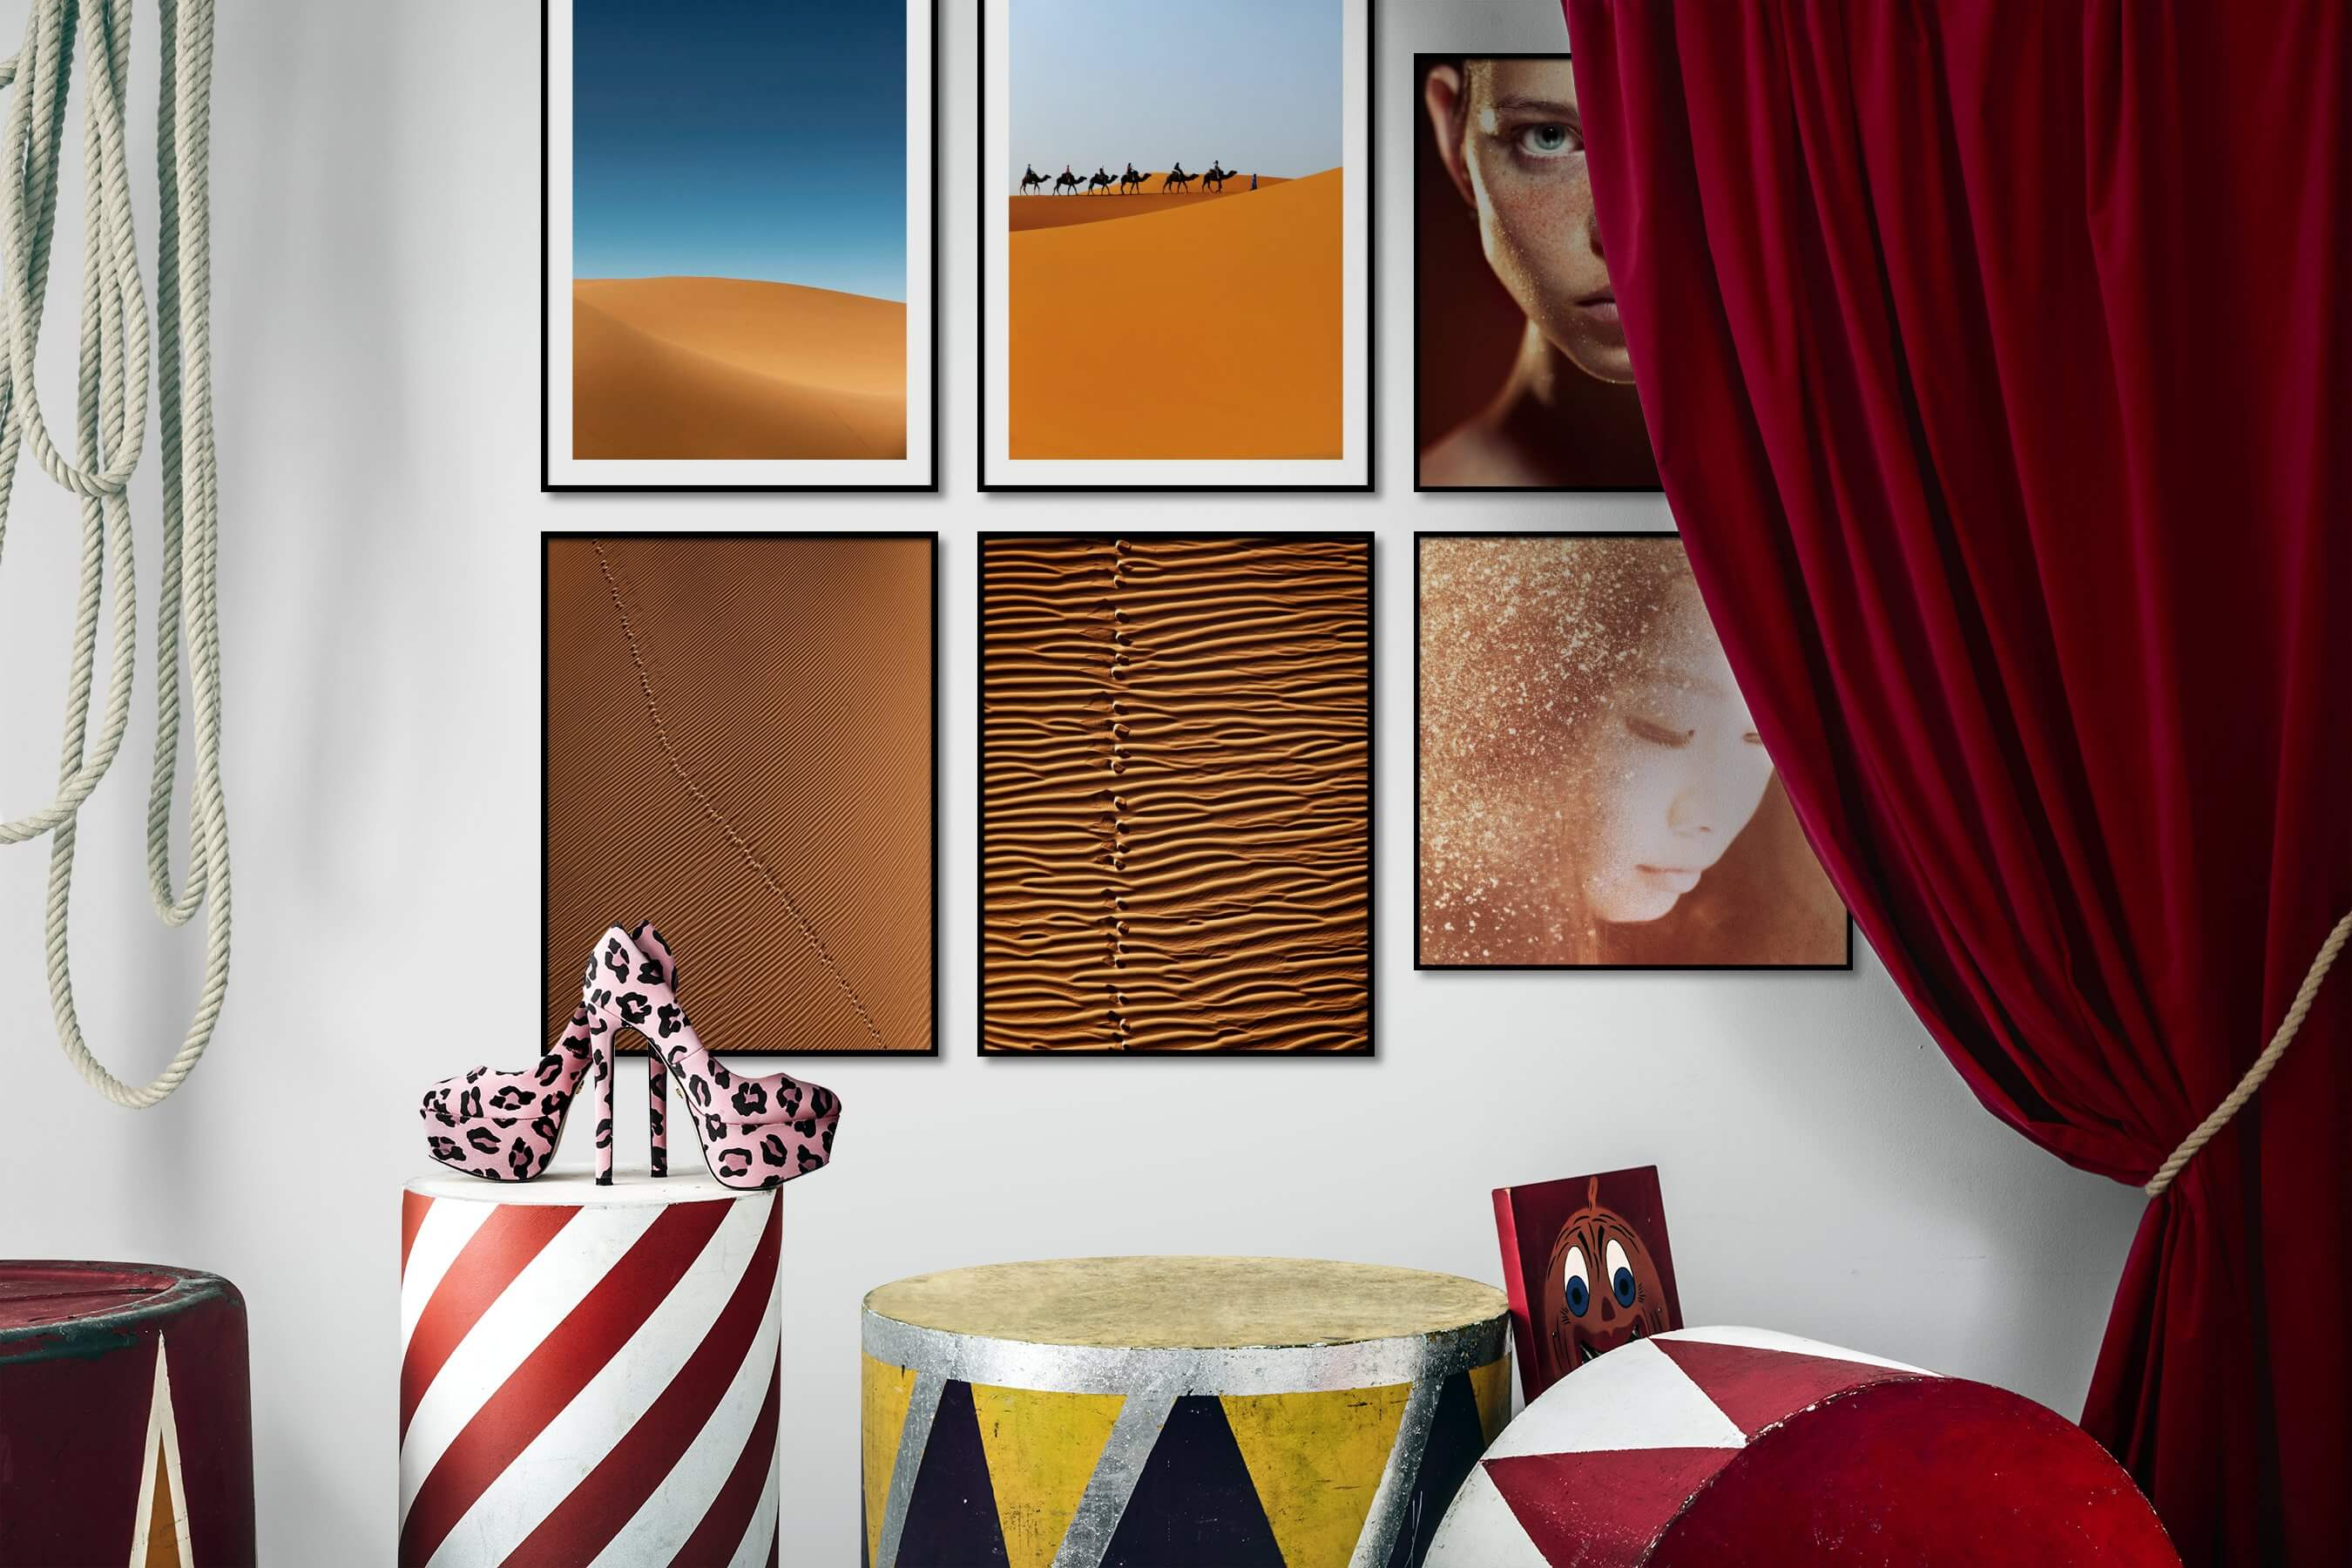 Gallery wall idea with six framed pictures arranged on a wall depicting For the Minimalist, Nature, Animals, For the Moderate, and Fashion & Beauty